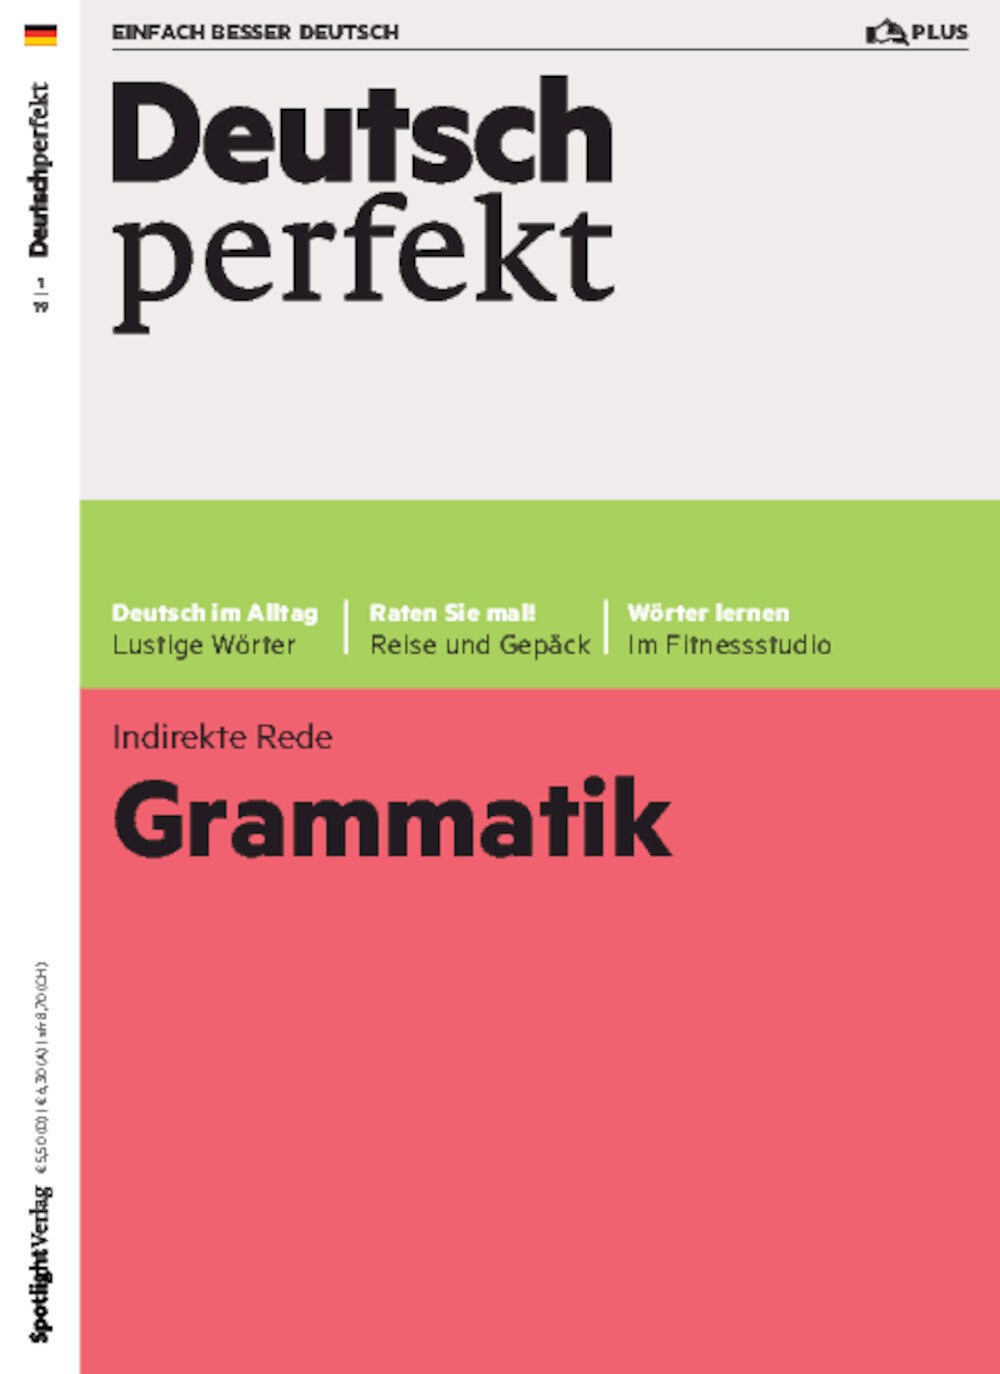 Deutsch perfekt PLUS 01/2019